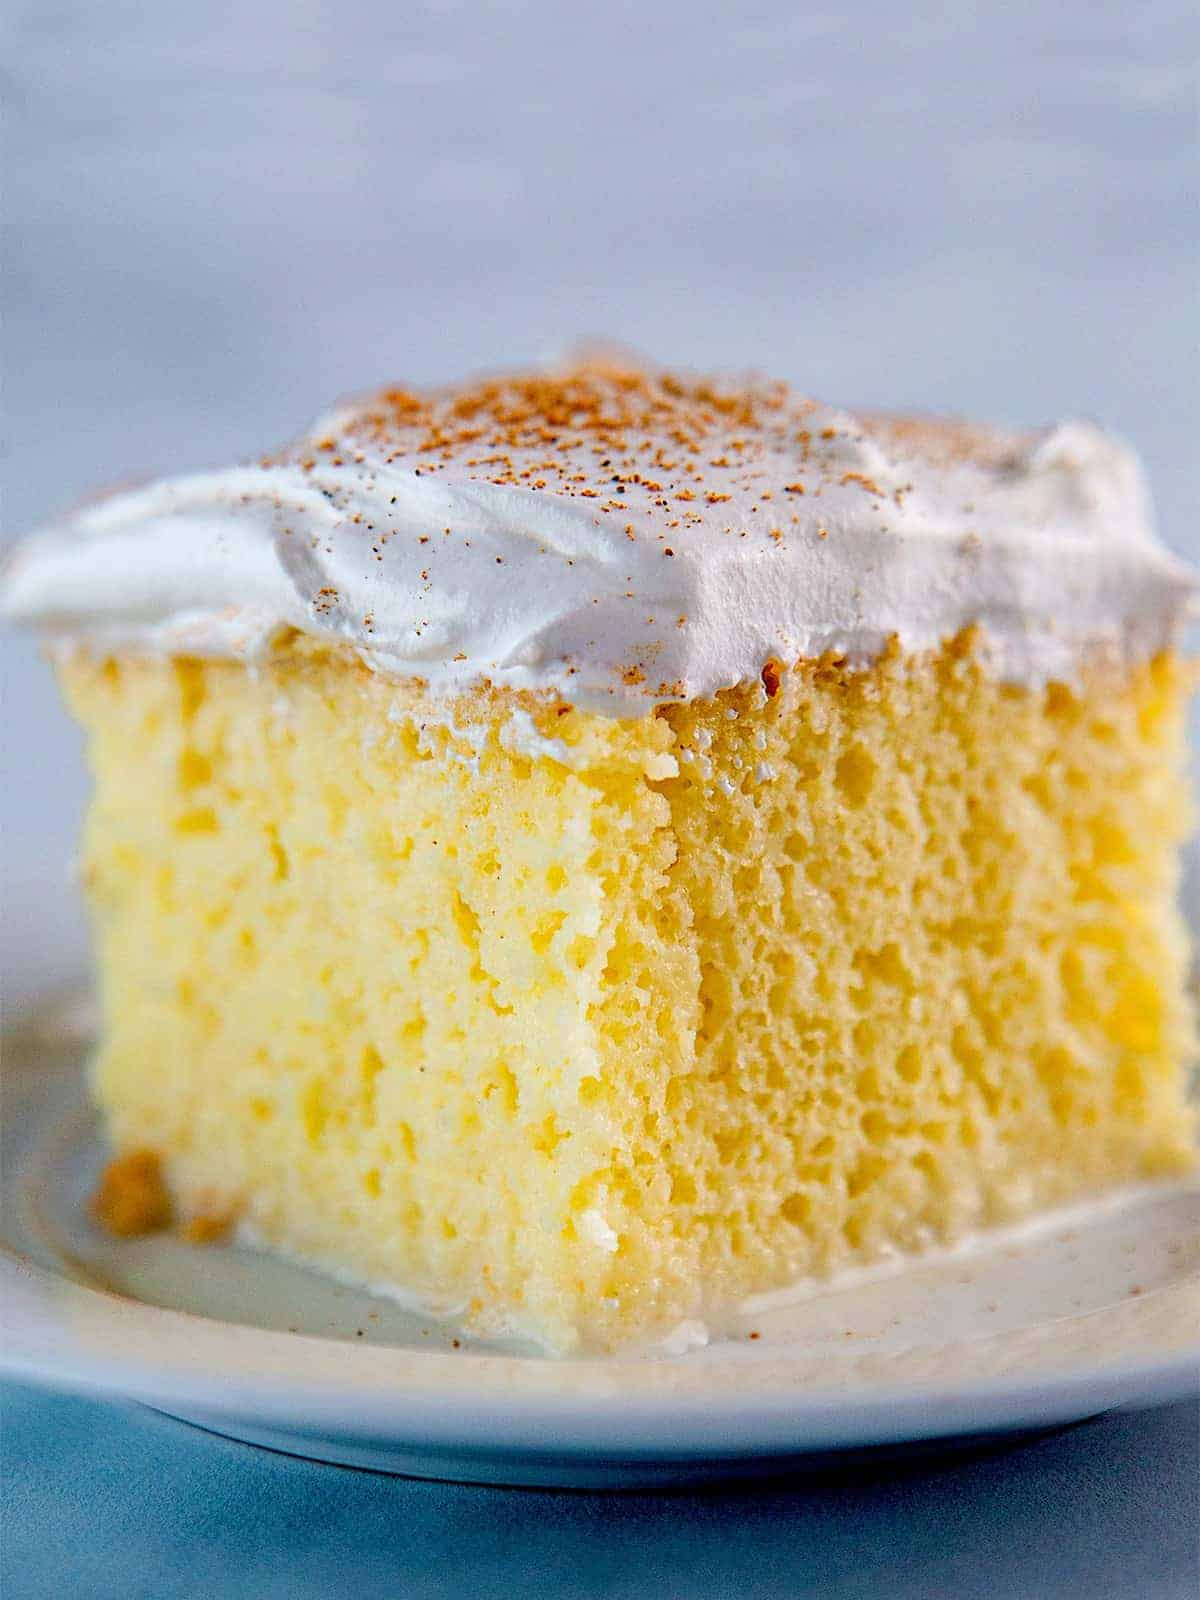 Slice of tres leches cake with whipped cream frosting on plate.